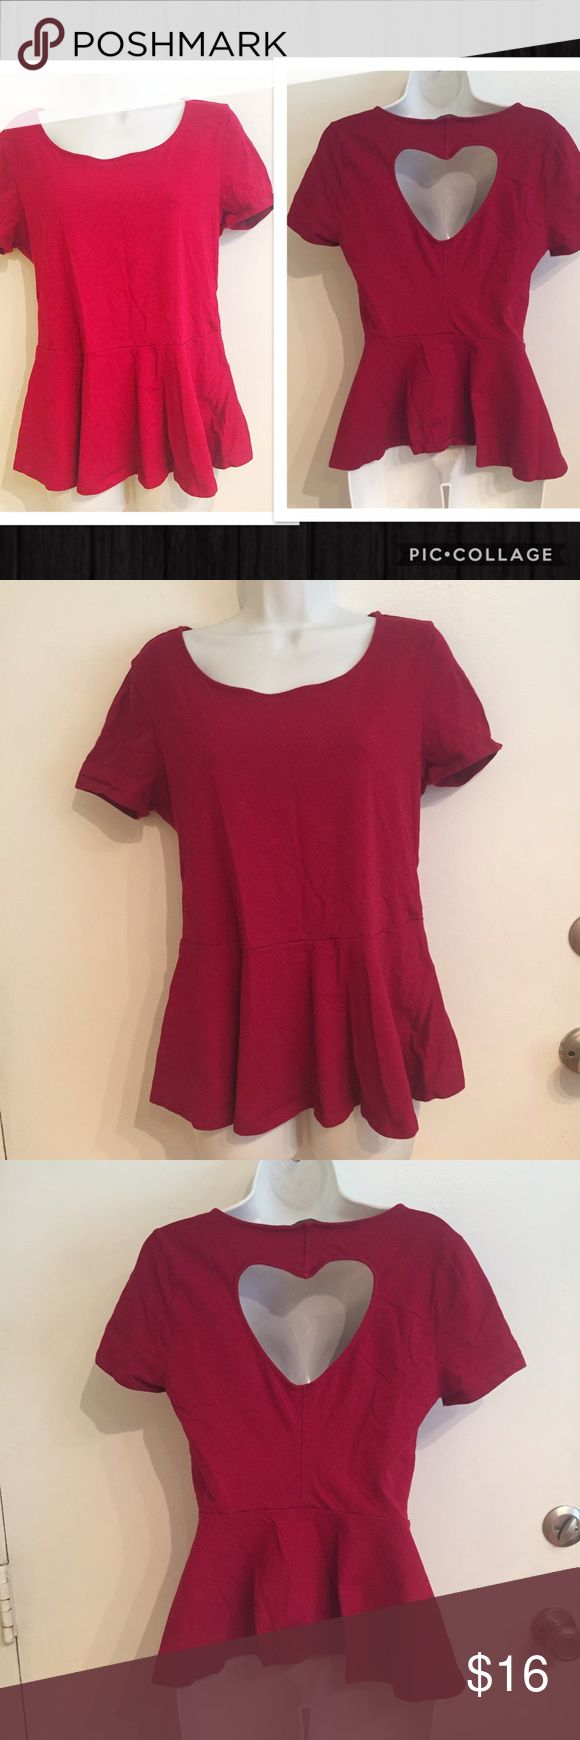 Forever 21+ Red Peplum Heart Cut Out Top Forever 21+ red Peplum Heart Cut Out Back Top. Size 1x. #forever21 #plus #plussize #peplum #red #heart #cutout #top #punkydoodle  No modeling Smoke free home I do discount bundles Forever 21 Tops